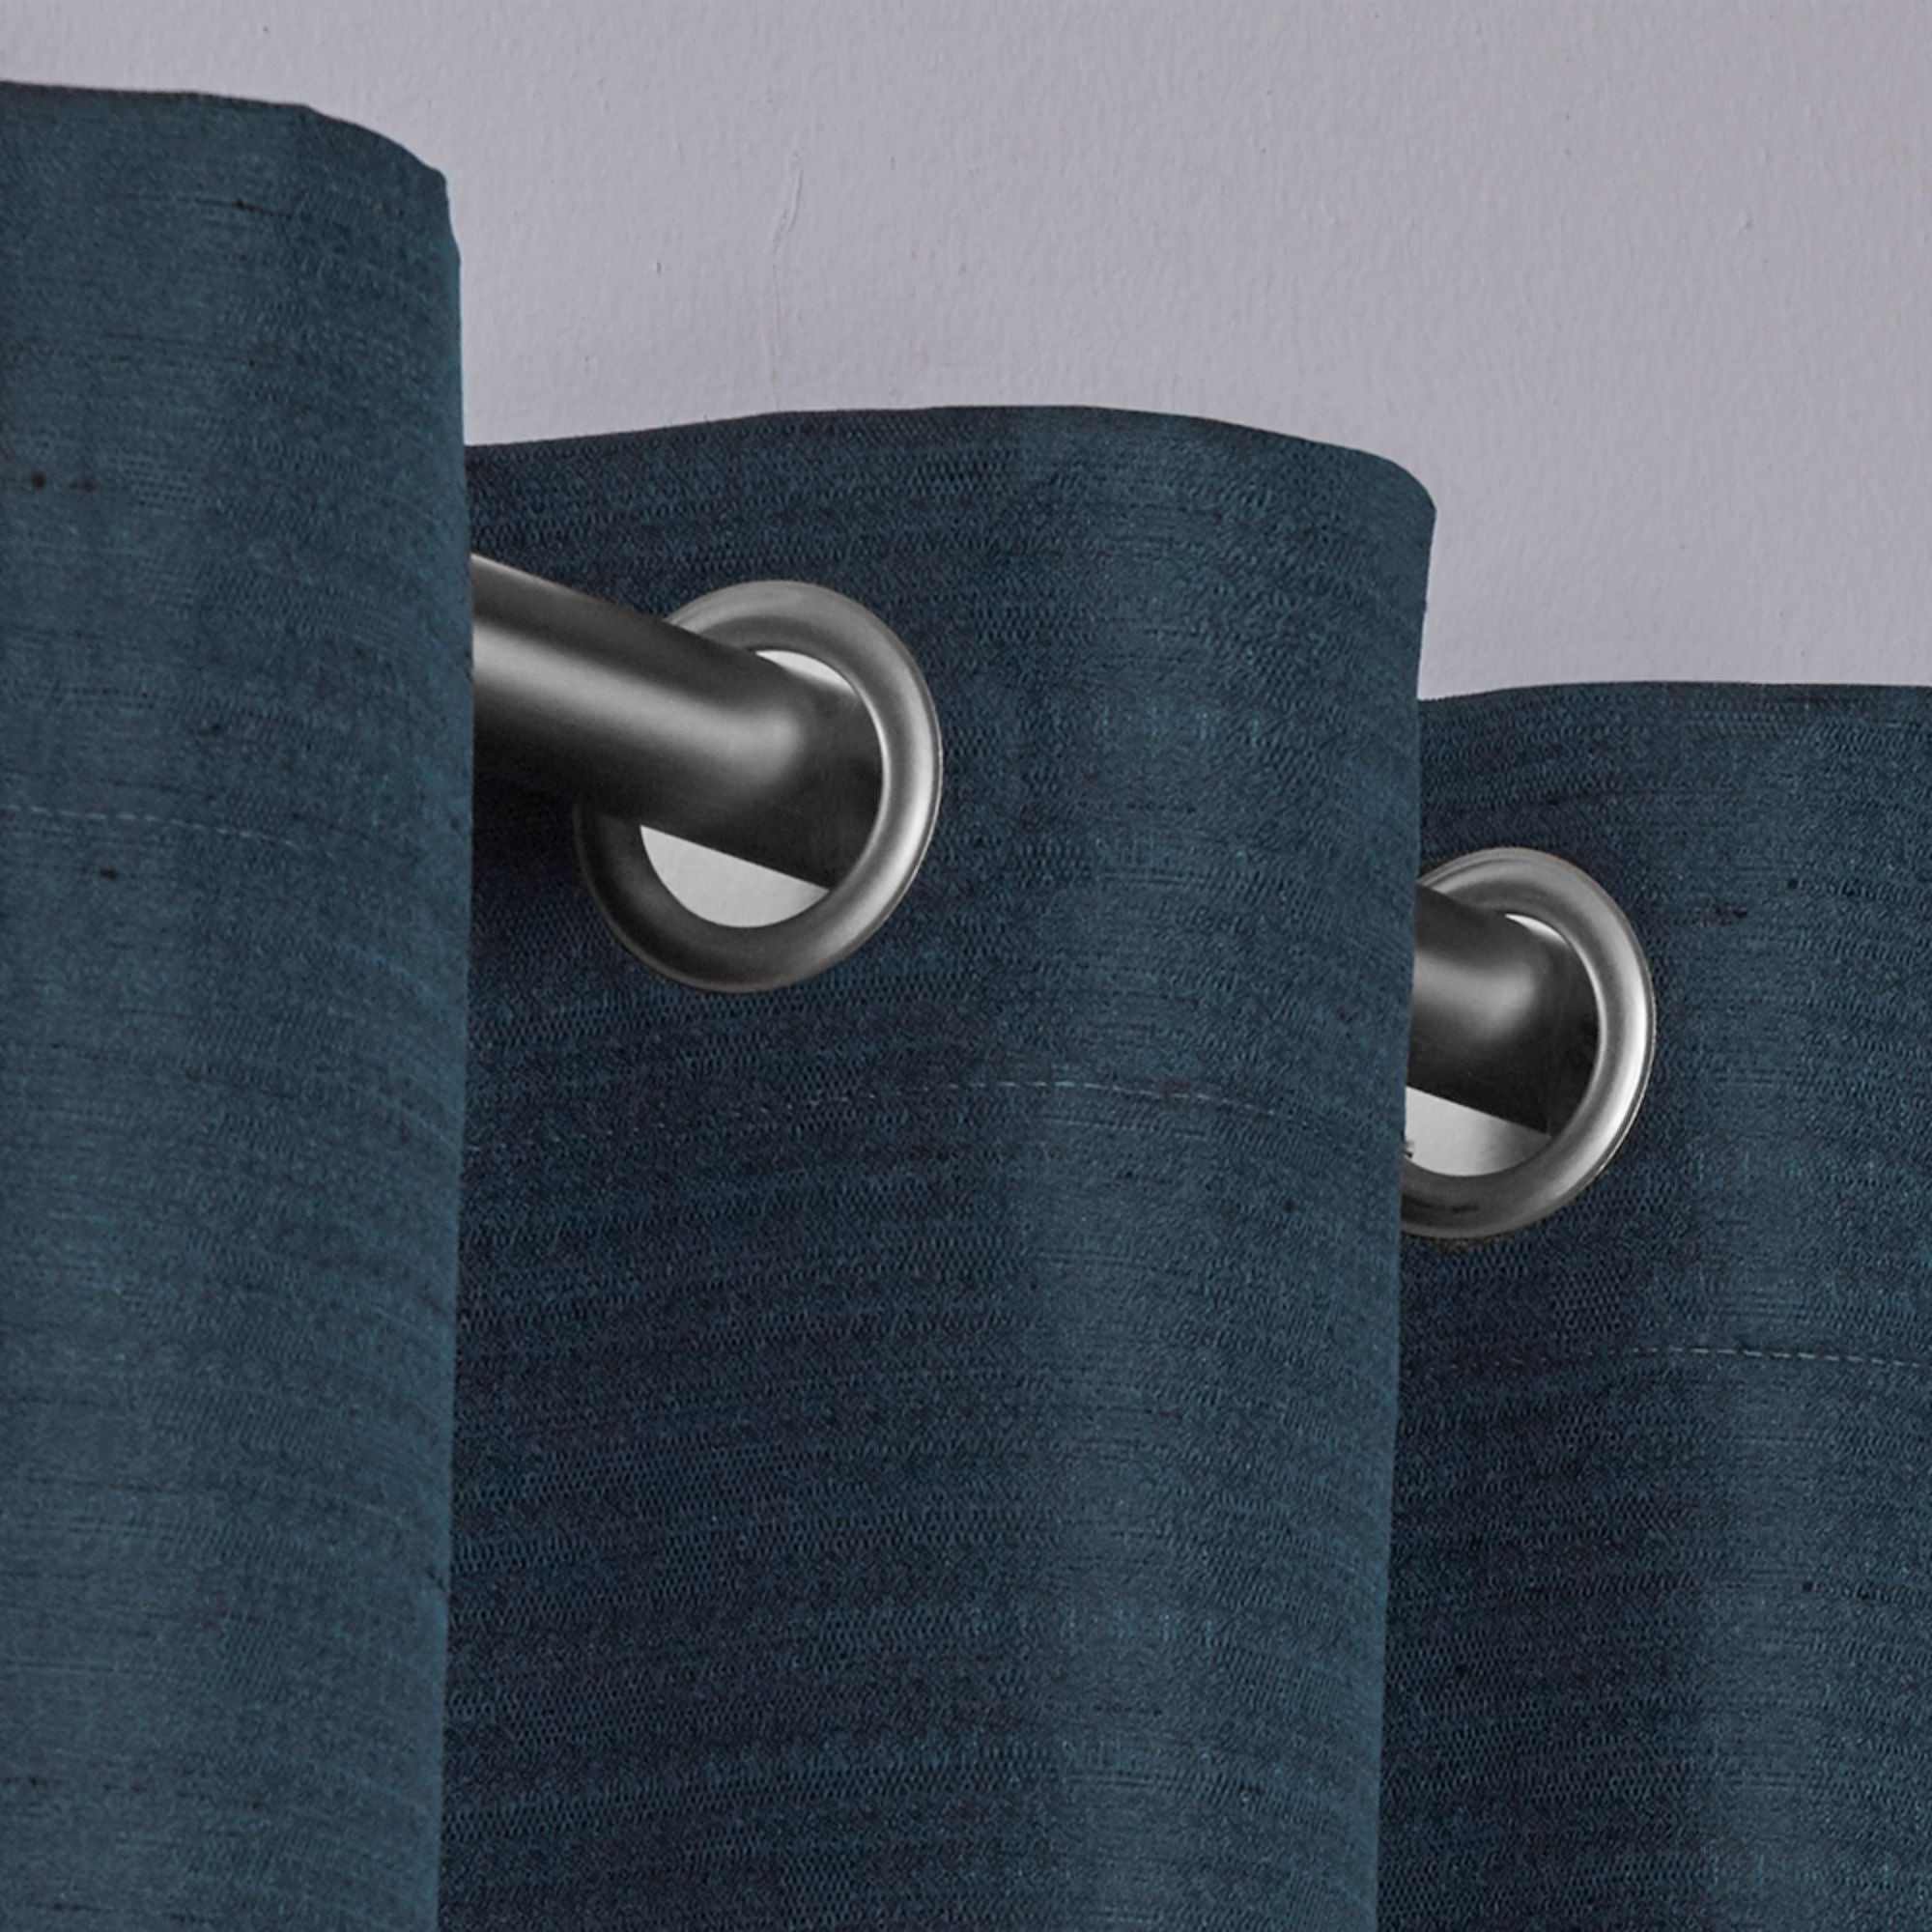 Raw Silk Thermal Insulated Grommet Top Curtain Panel Pairs Within Current Porch & Den Patchen Raw Silk Thermal Insulated Grommet Top Curtain Panel Pair (View 16 of 20)